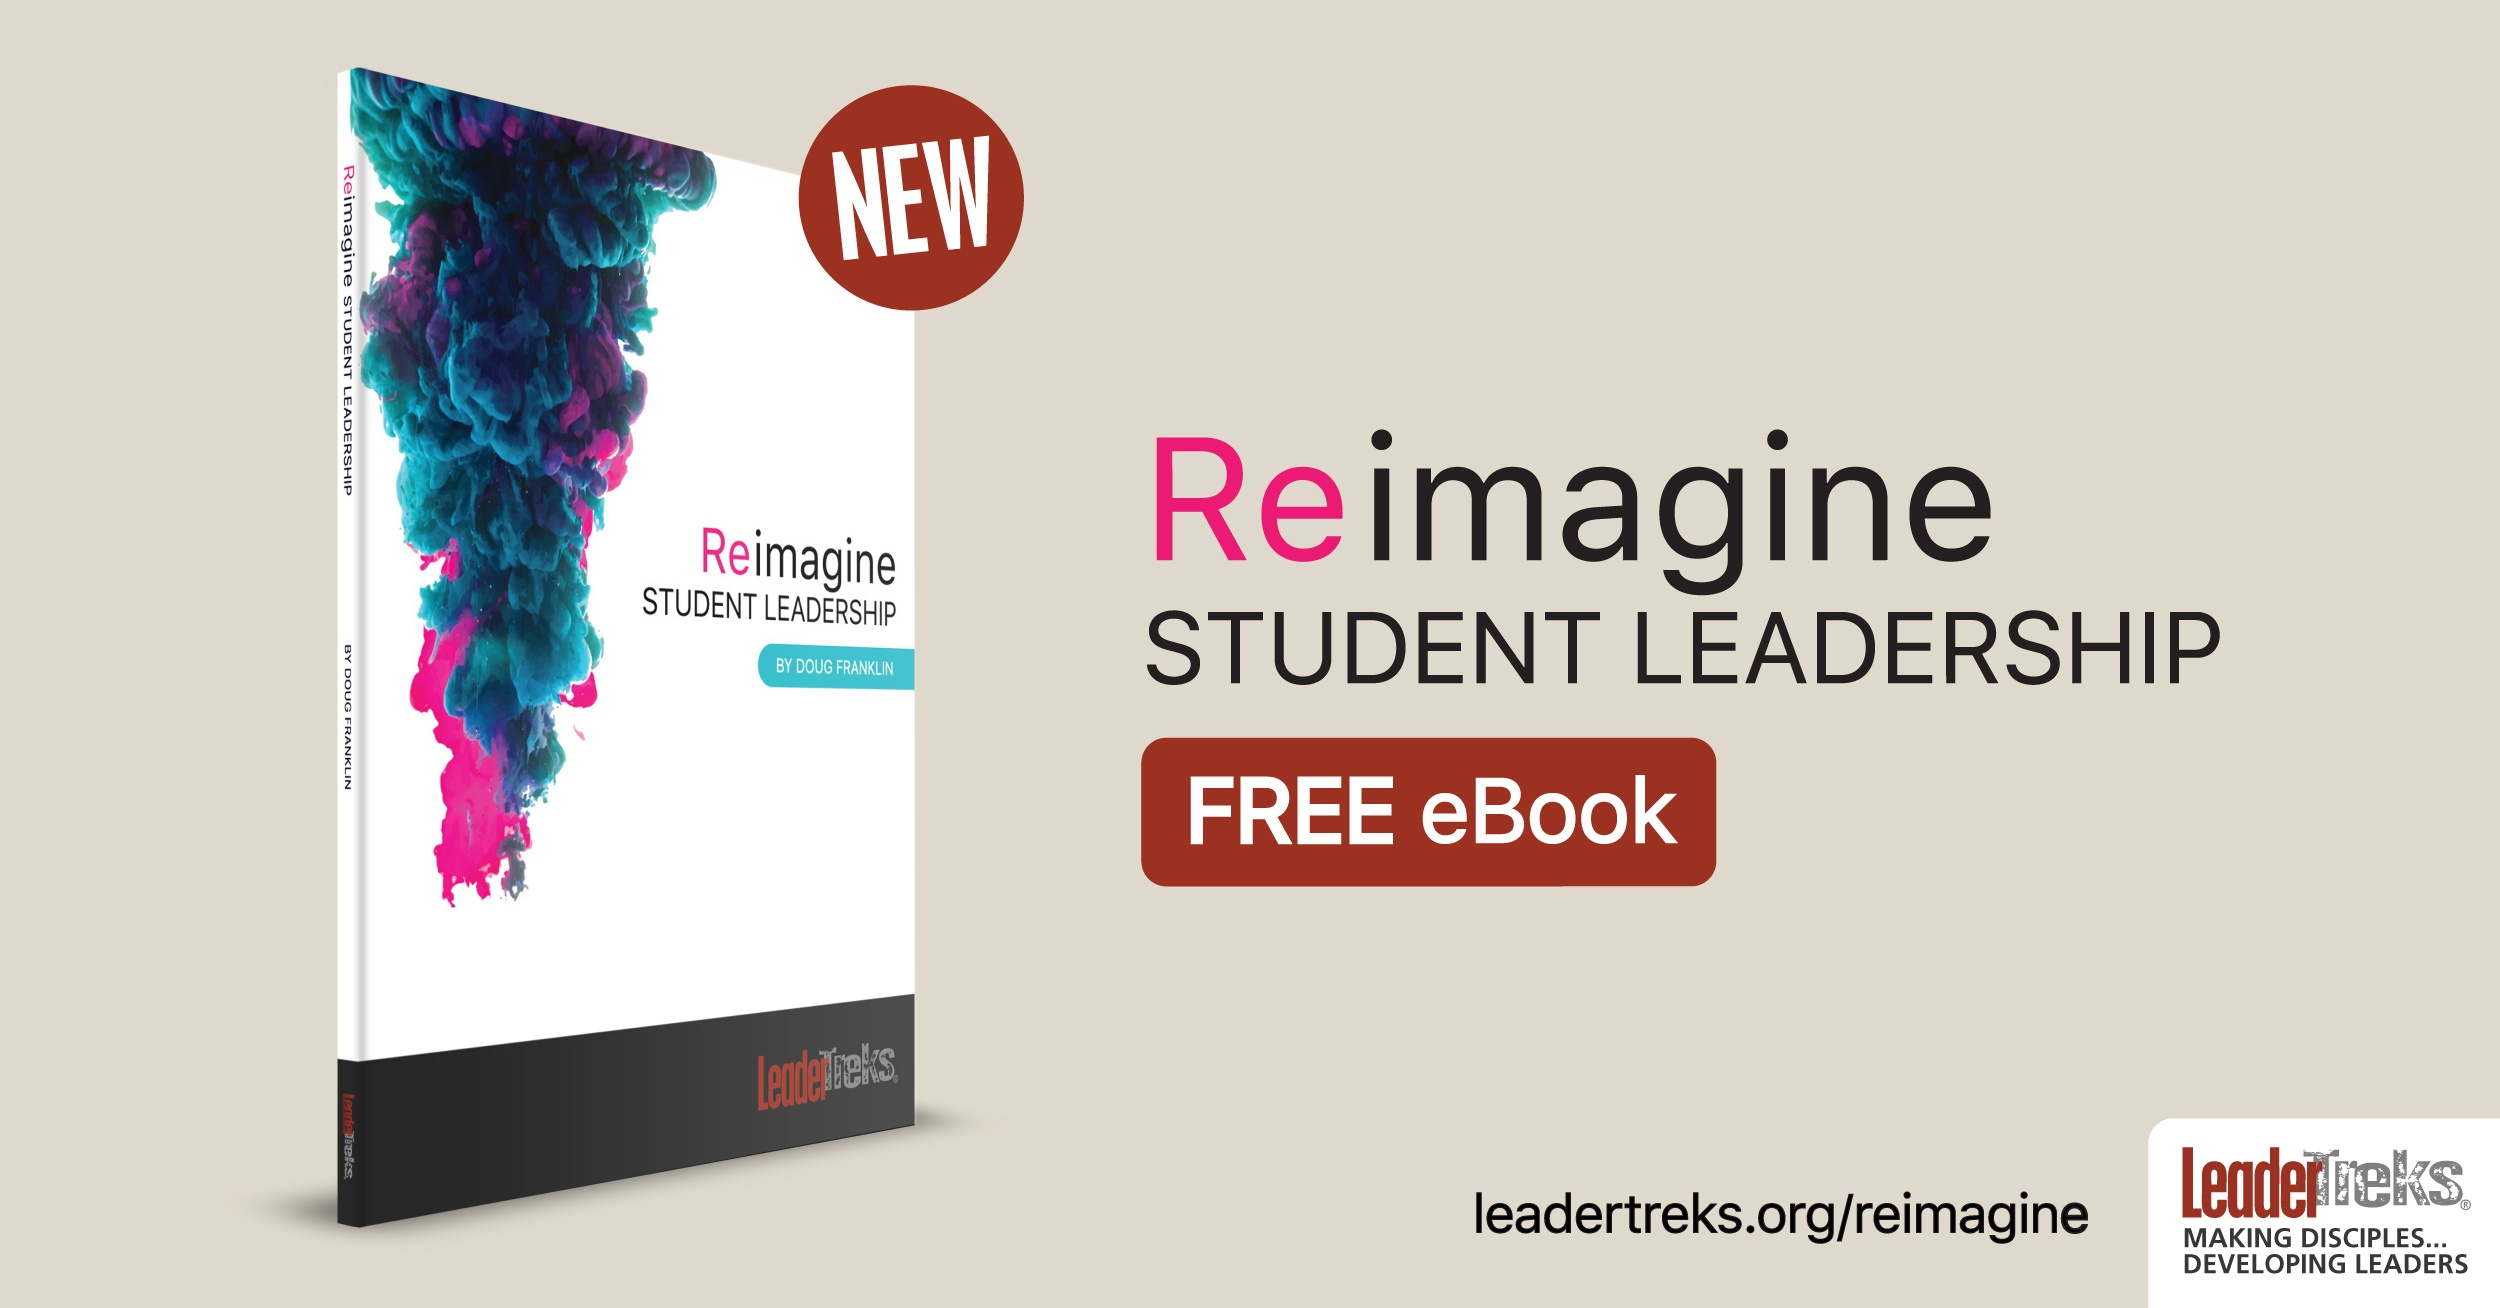 reimagine-ebook-ad-02.jpg